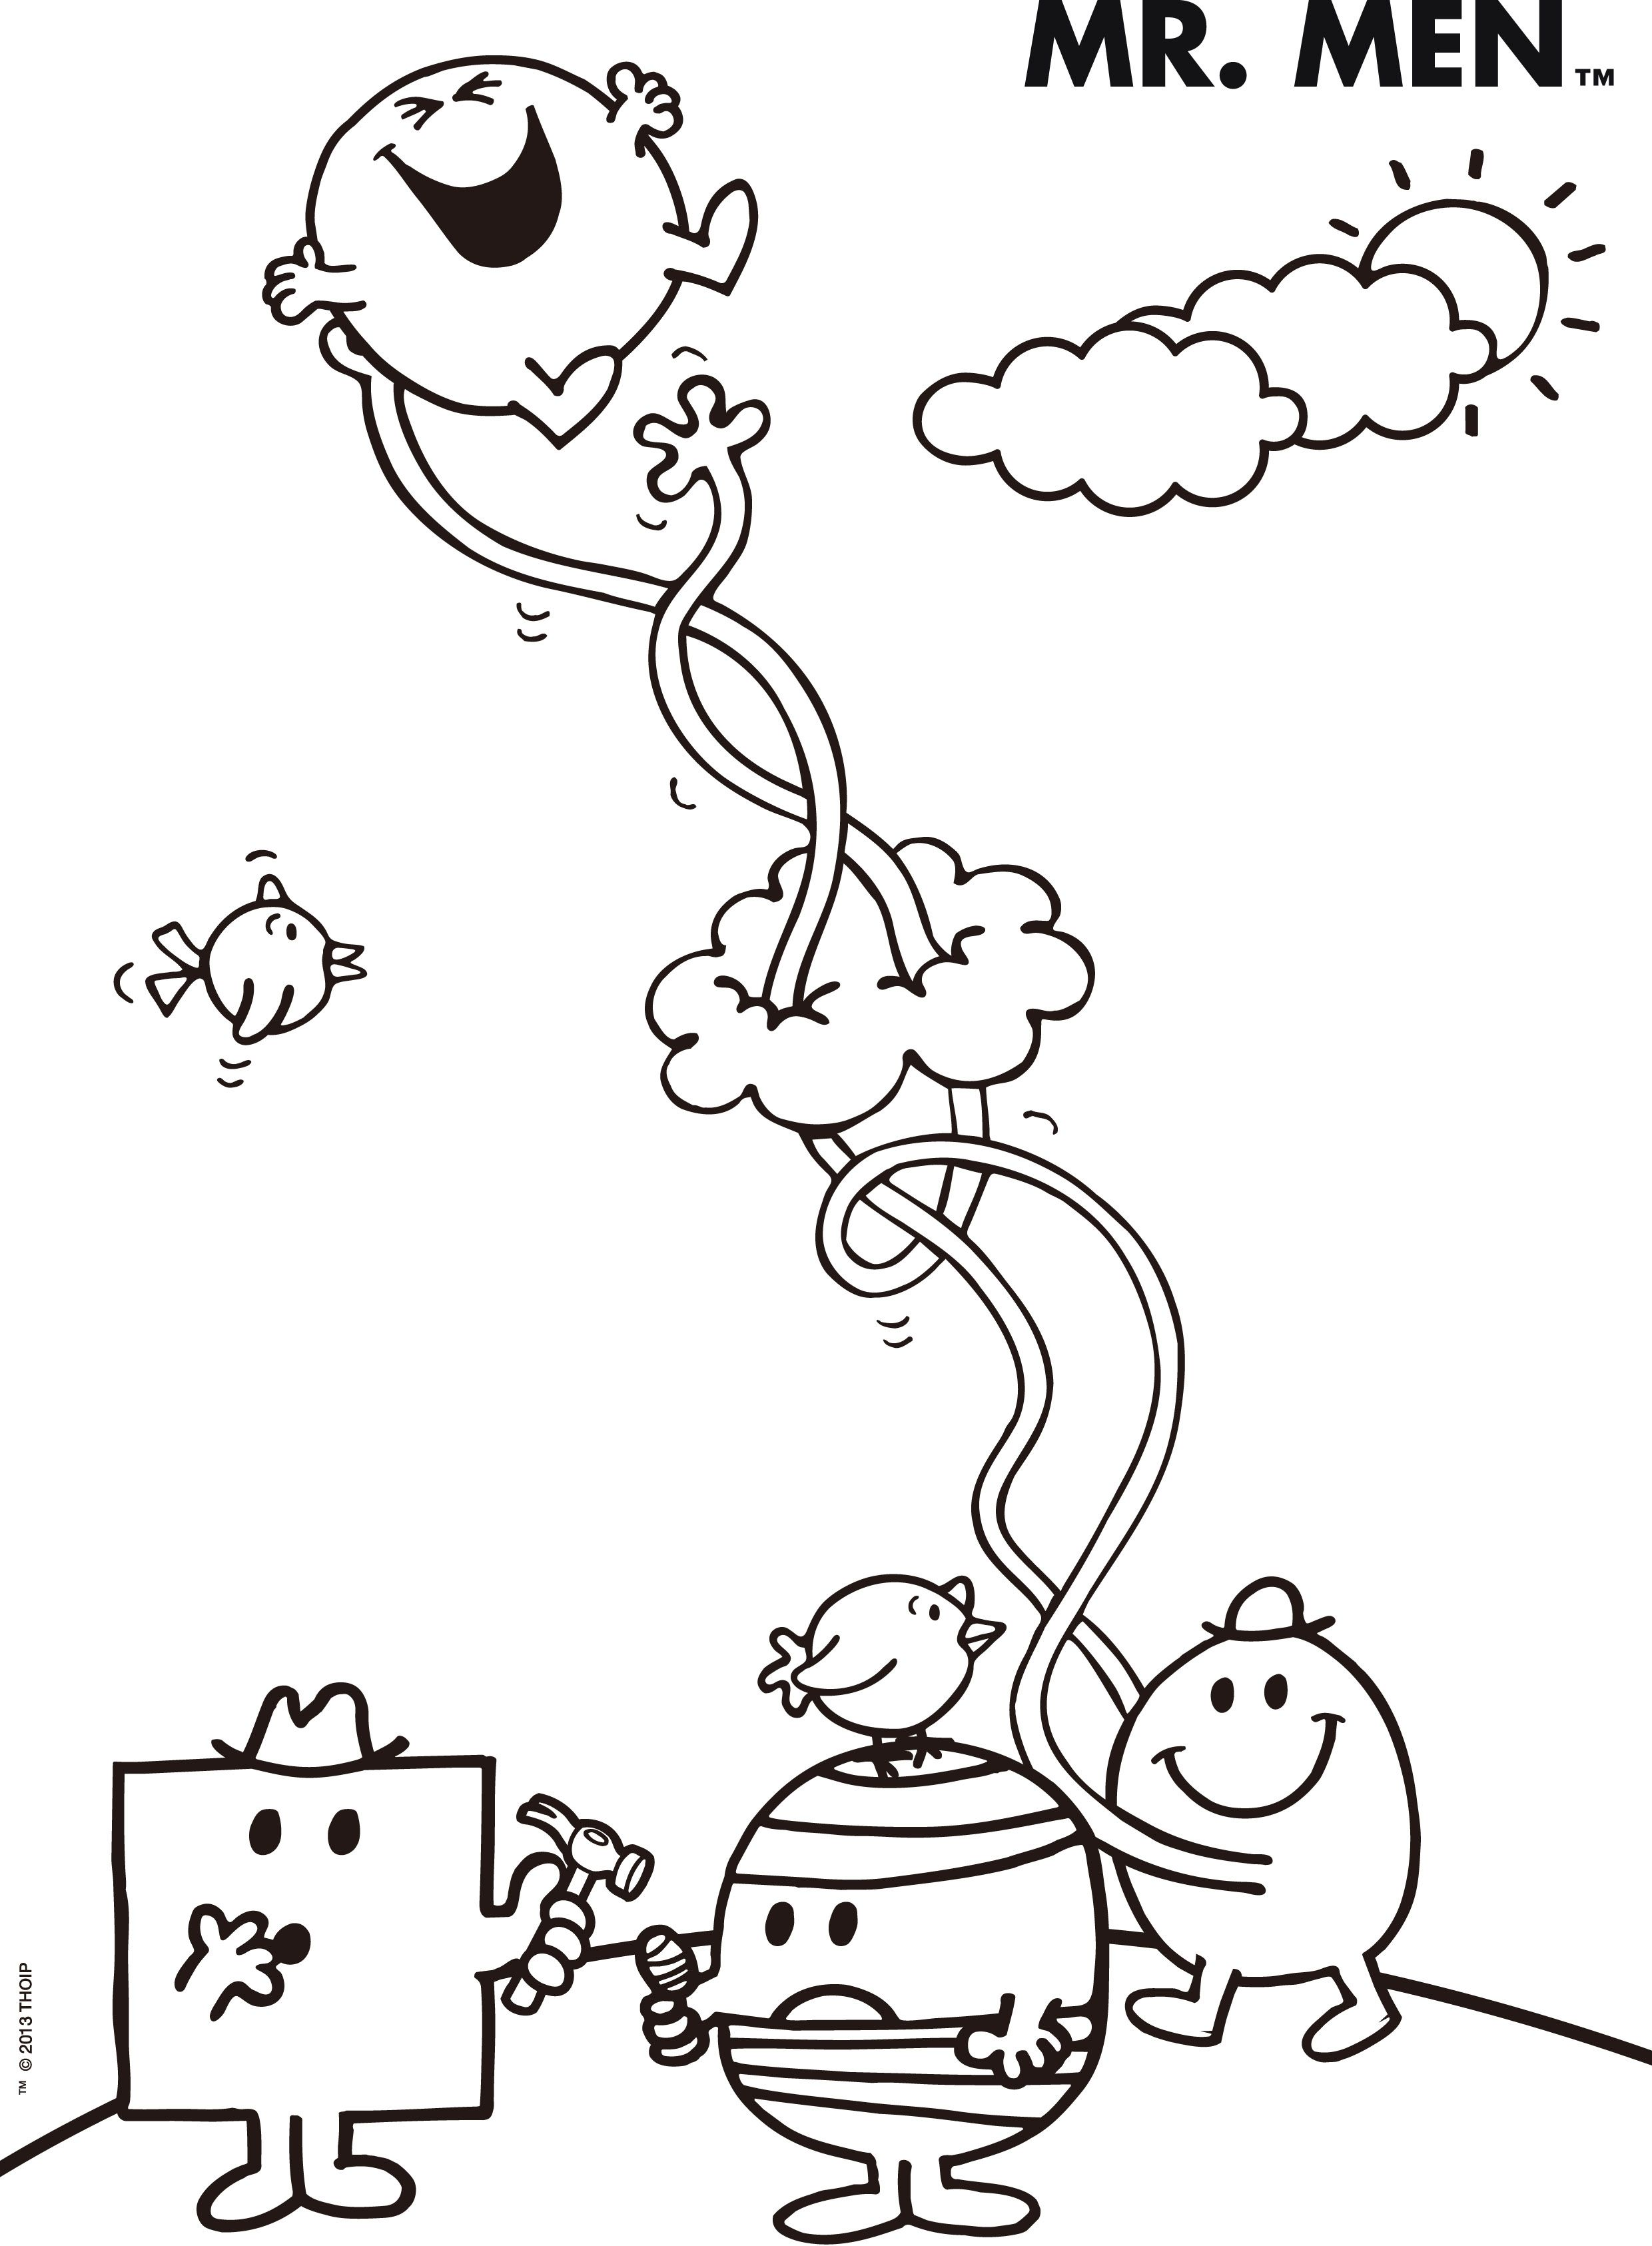 Mr. Men | Coloring Pages | Pinterest | Teaching ideas, Word search ...